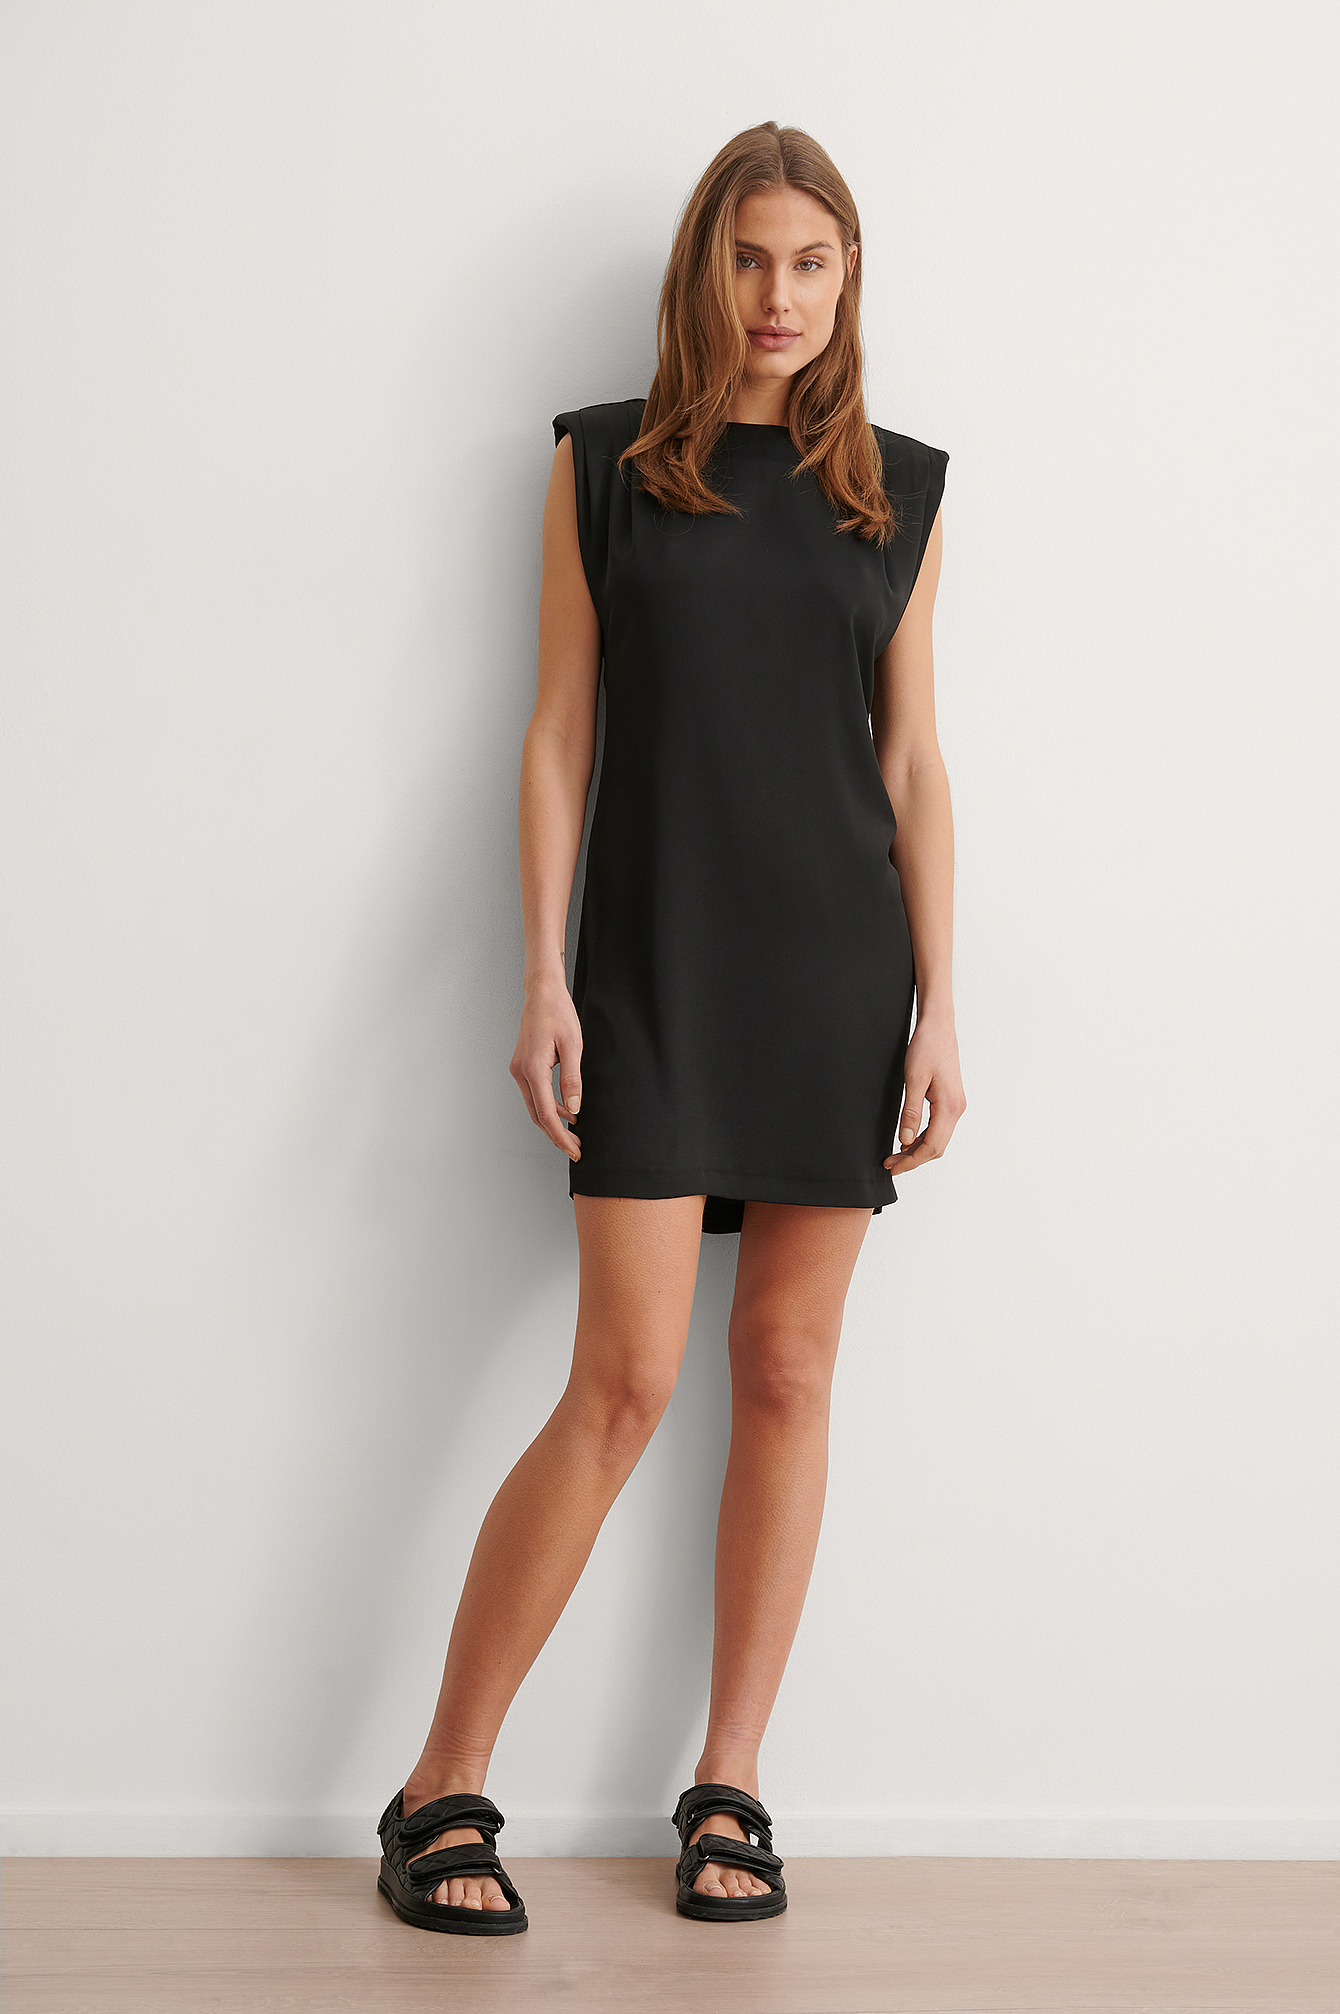 Black Shoulder Pad Mini Dress